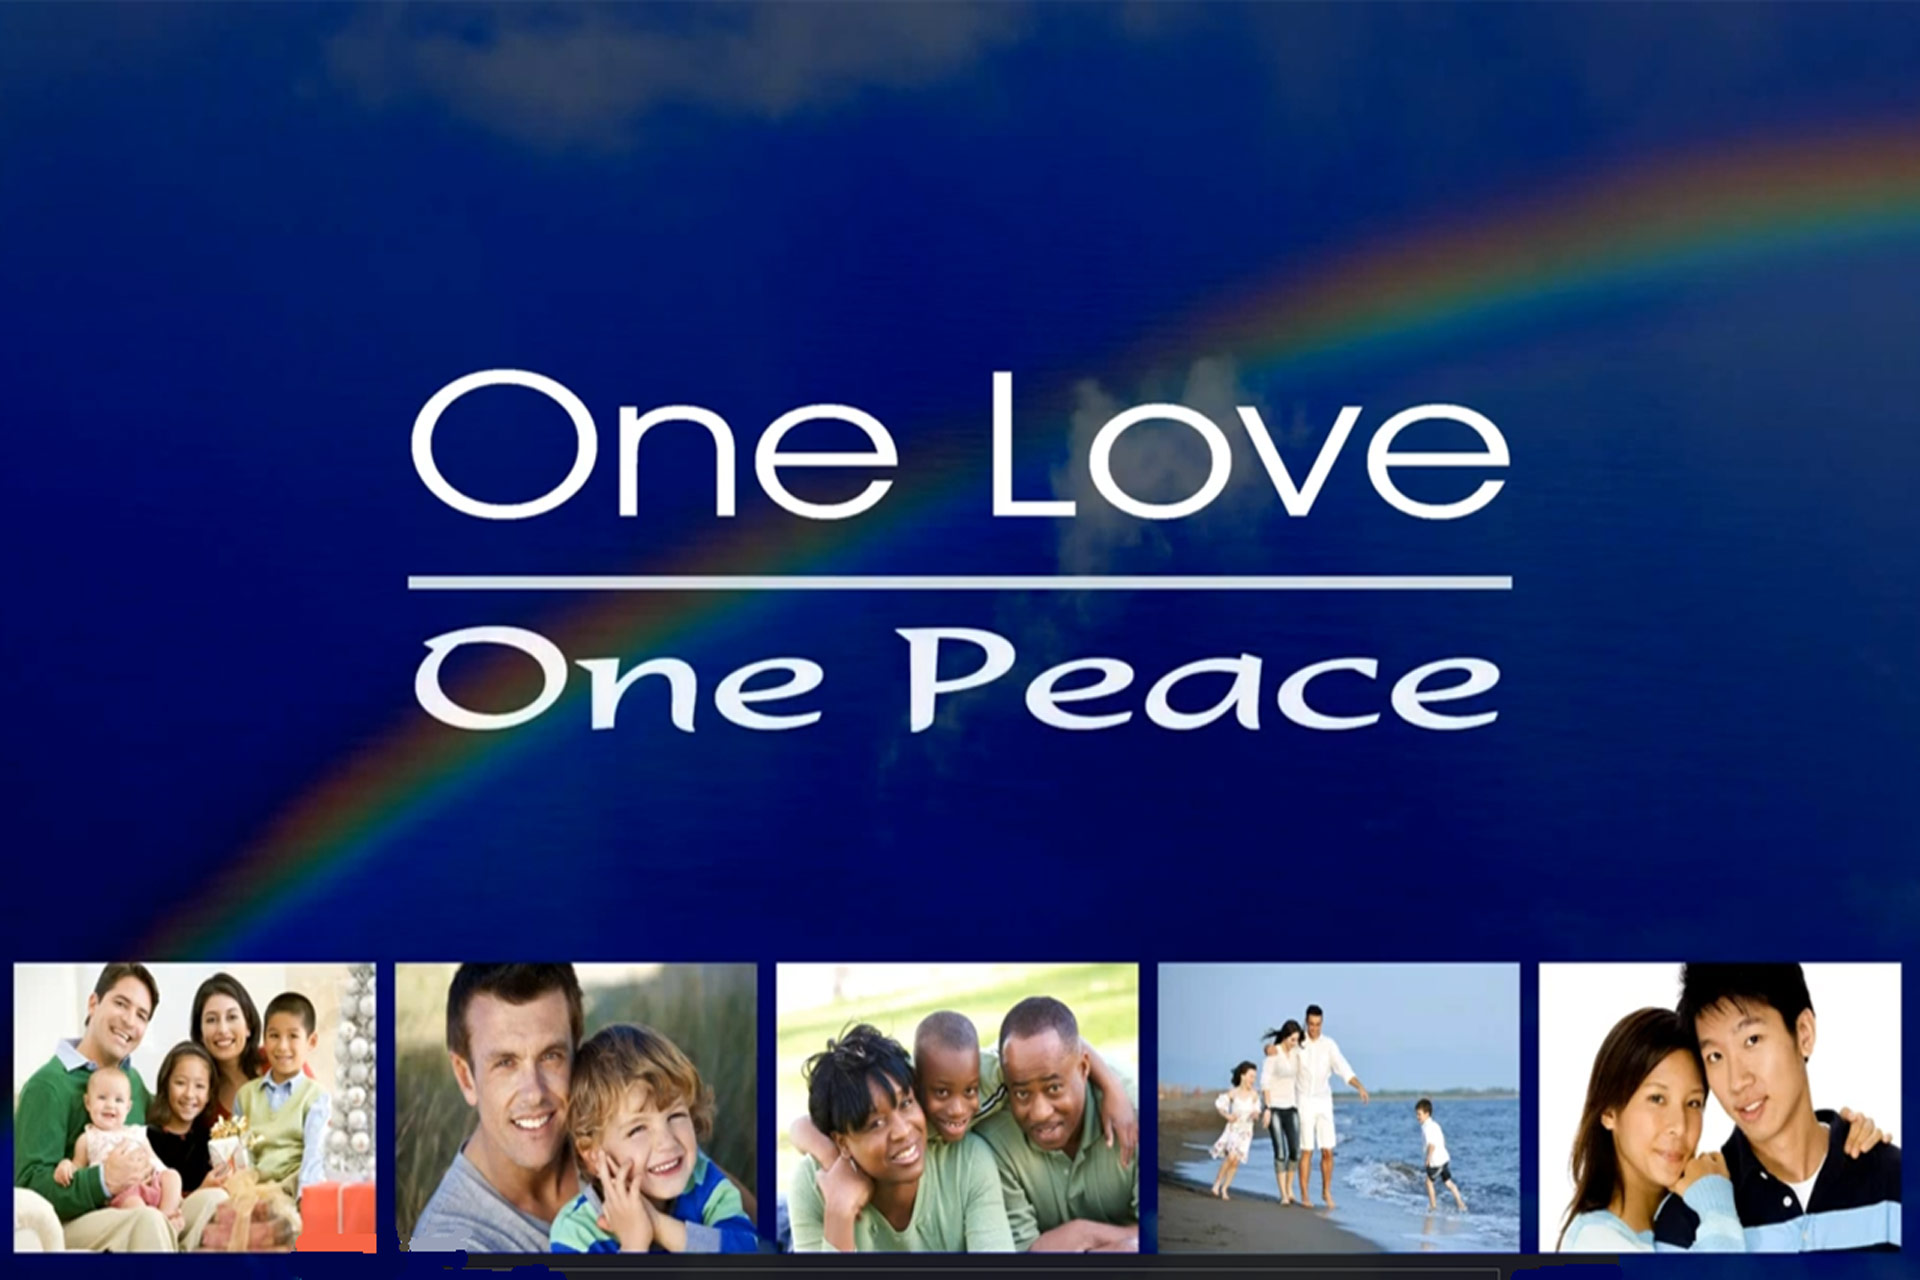 One Love - one Peace